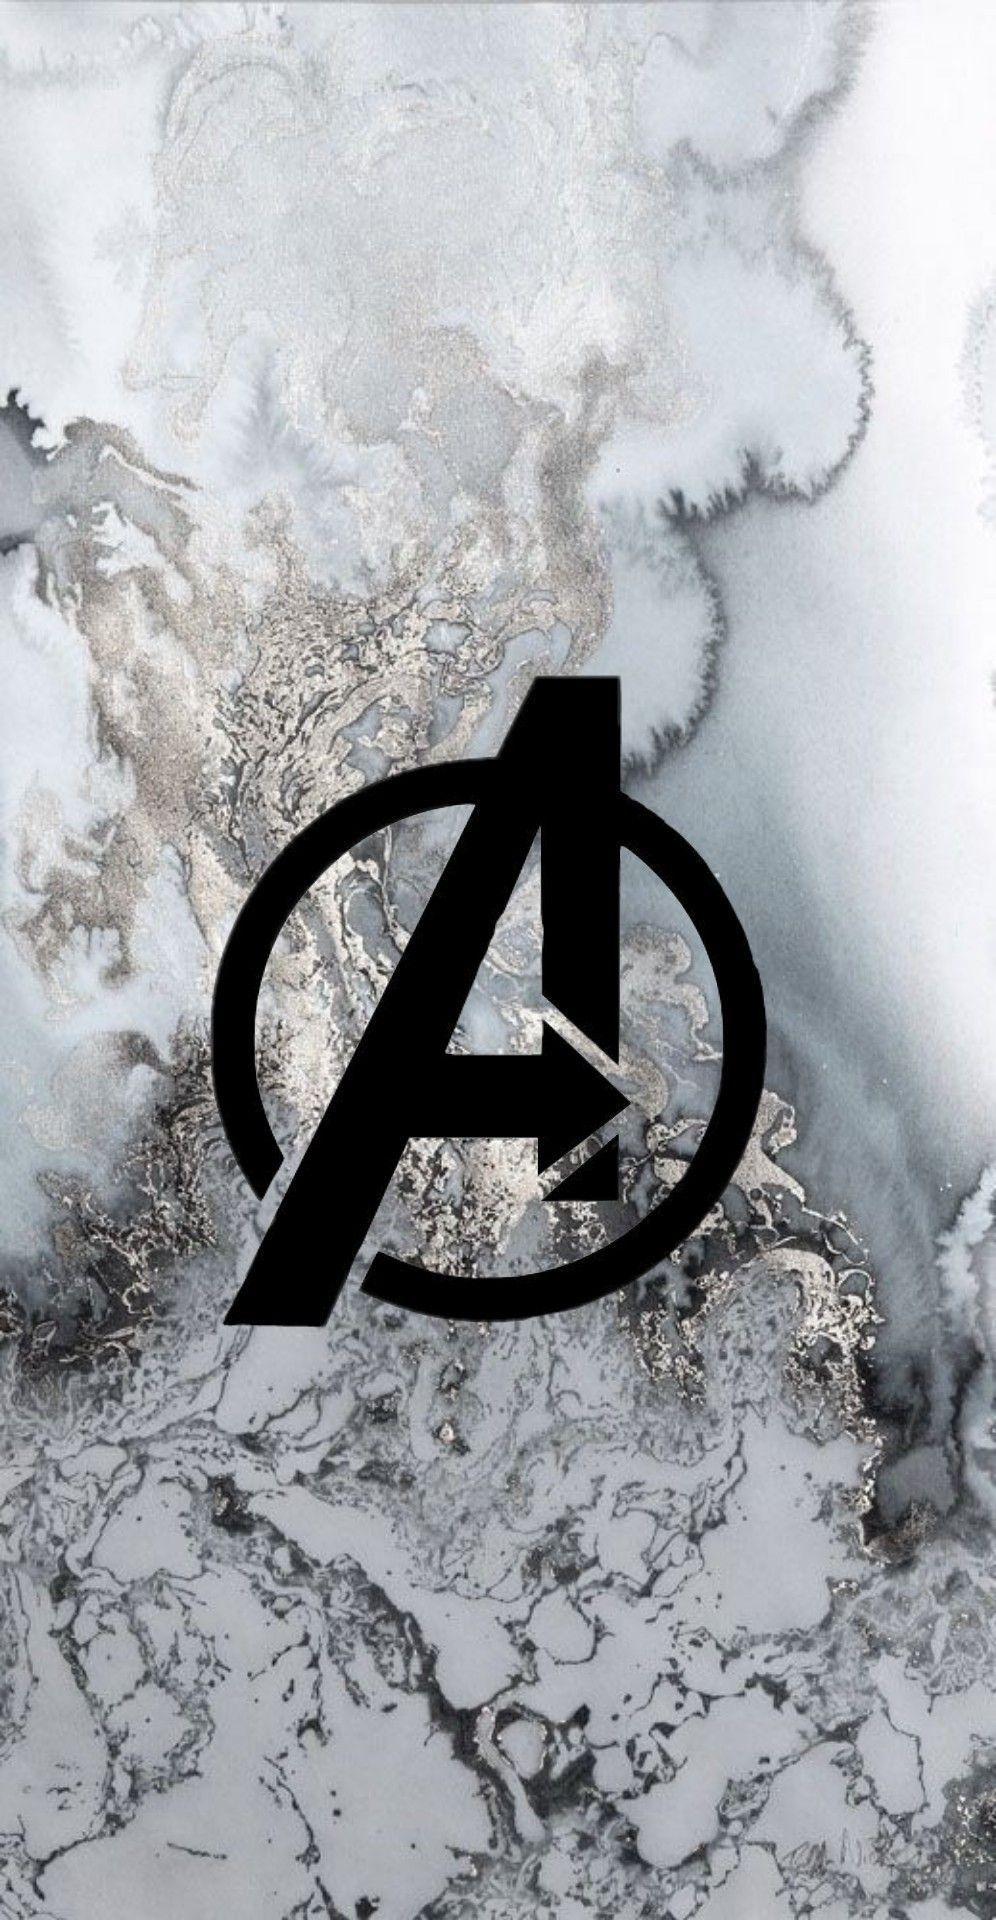 Marvel Movie Wallpaper for iPhone from Uploaded by user